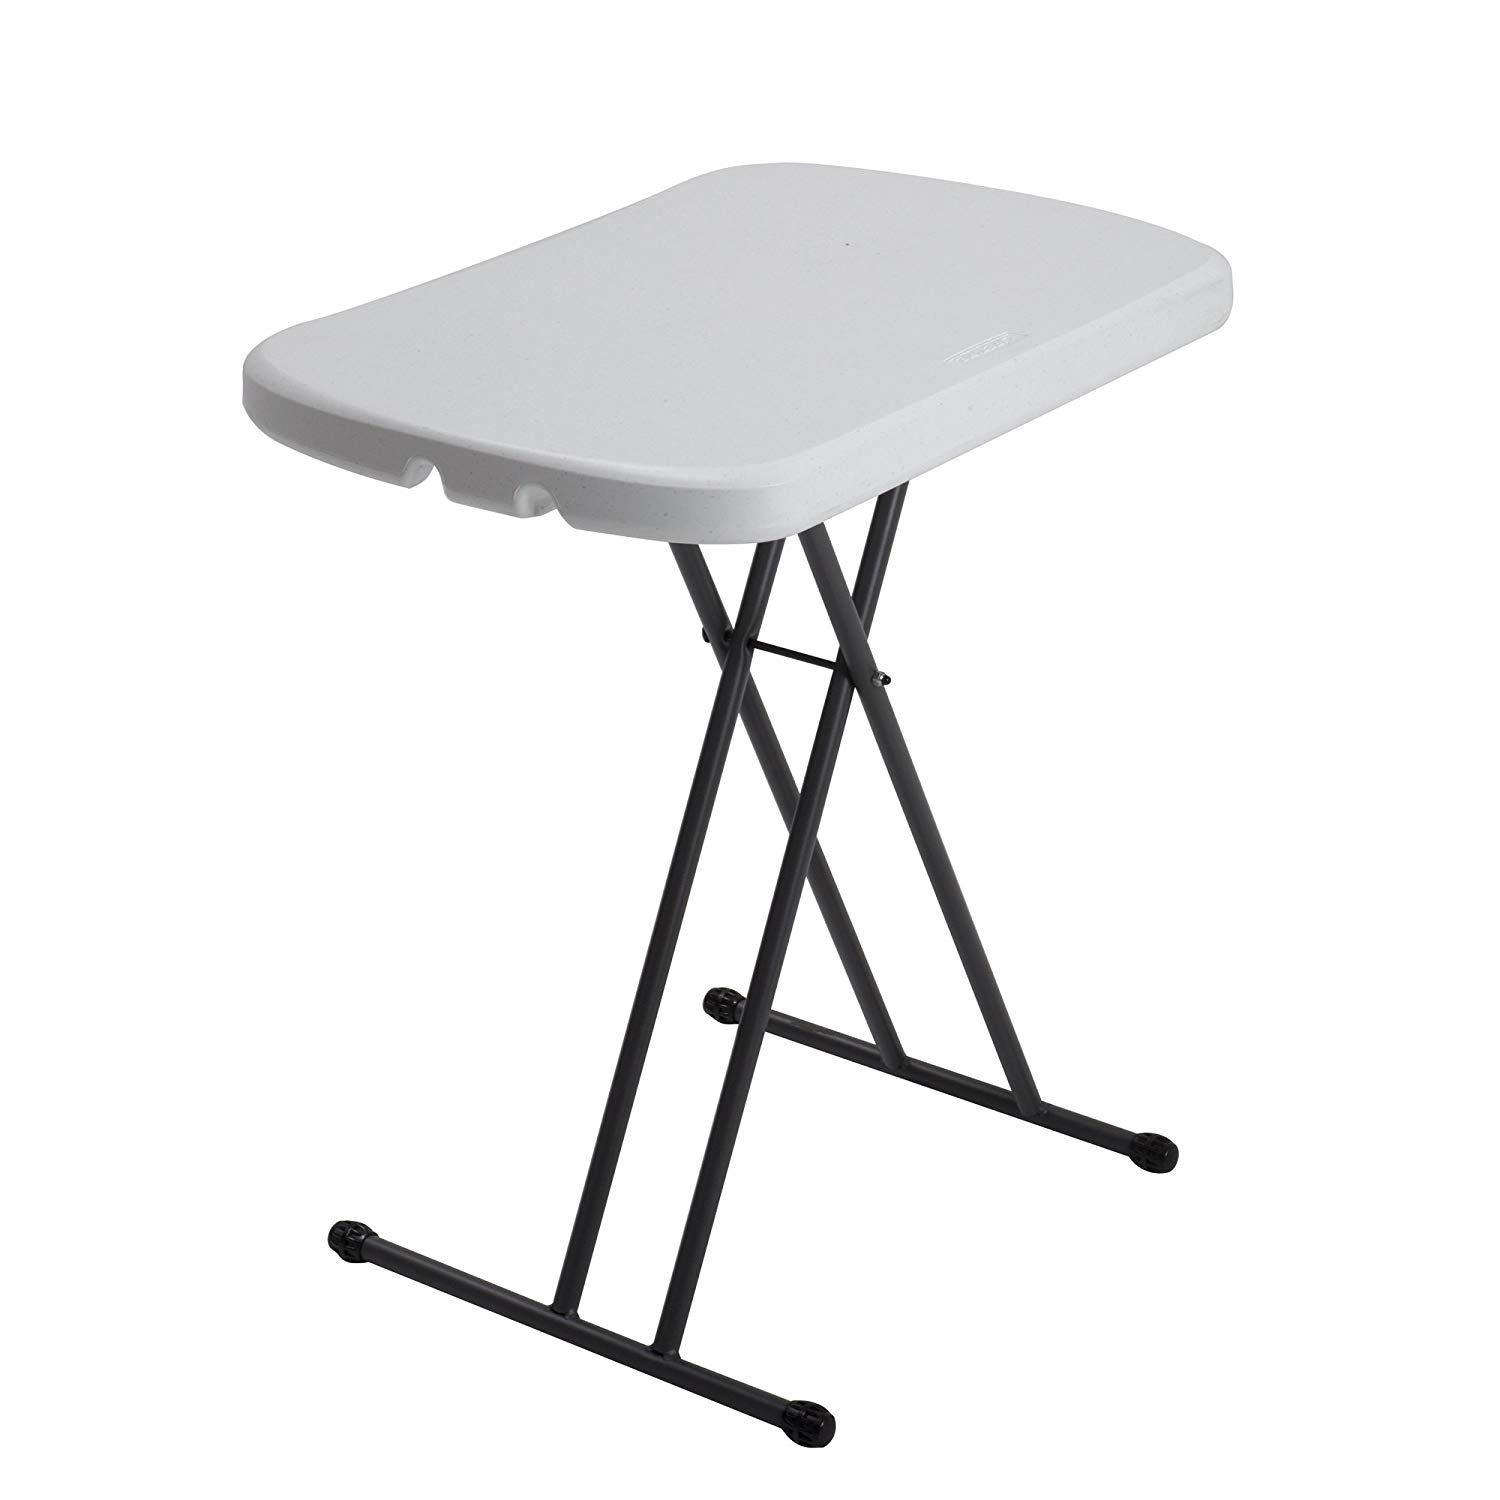 Folding table amazon.com: Lifetime 80251 adjustable folding table for laptop, TV tray, 26 inches, GNVFHJW